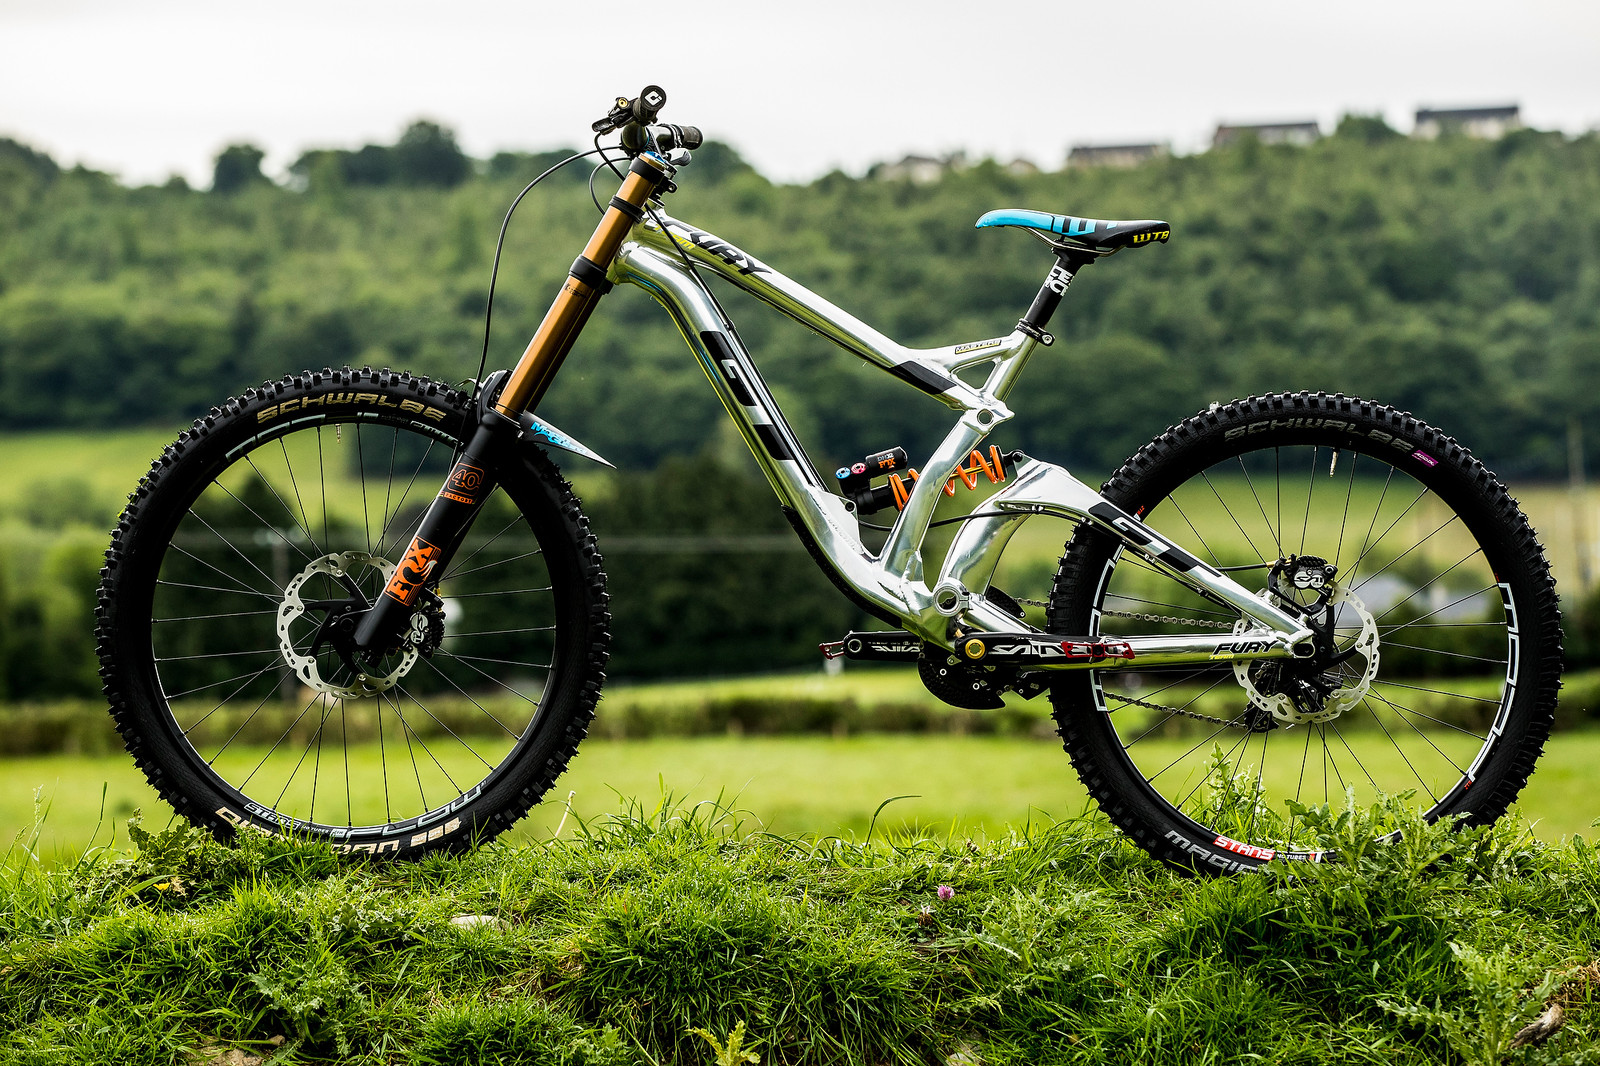 Prototype GT Fury for Wyn Masters - 2017 Fort William World Cup Pit Bits - Mountain Biking Pictures - Vital MTB